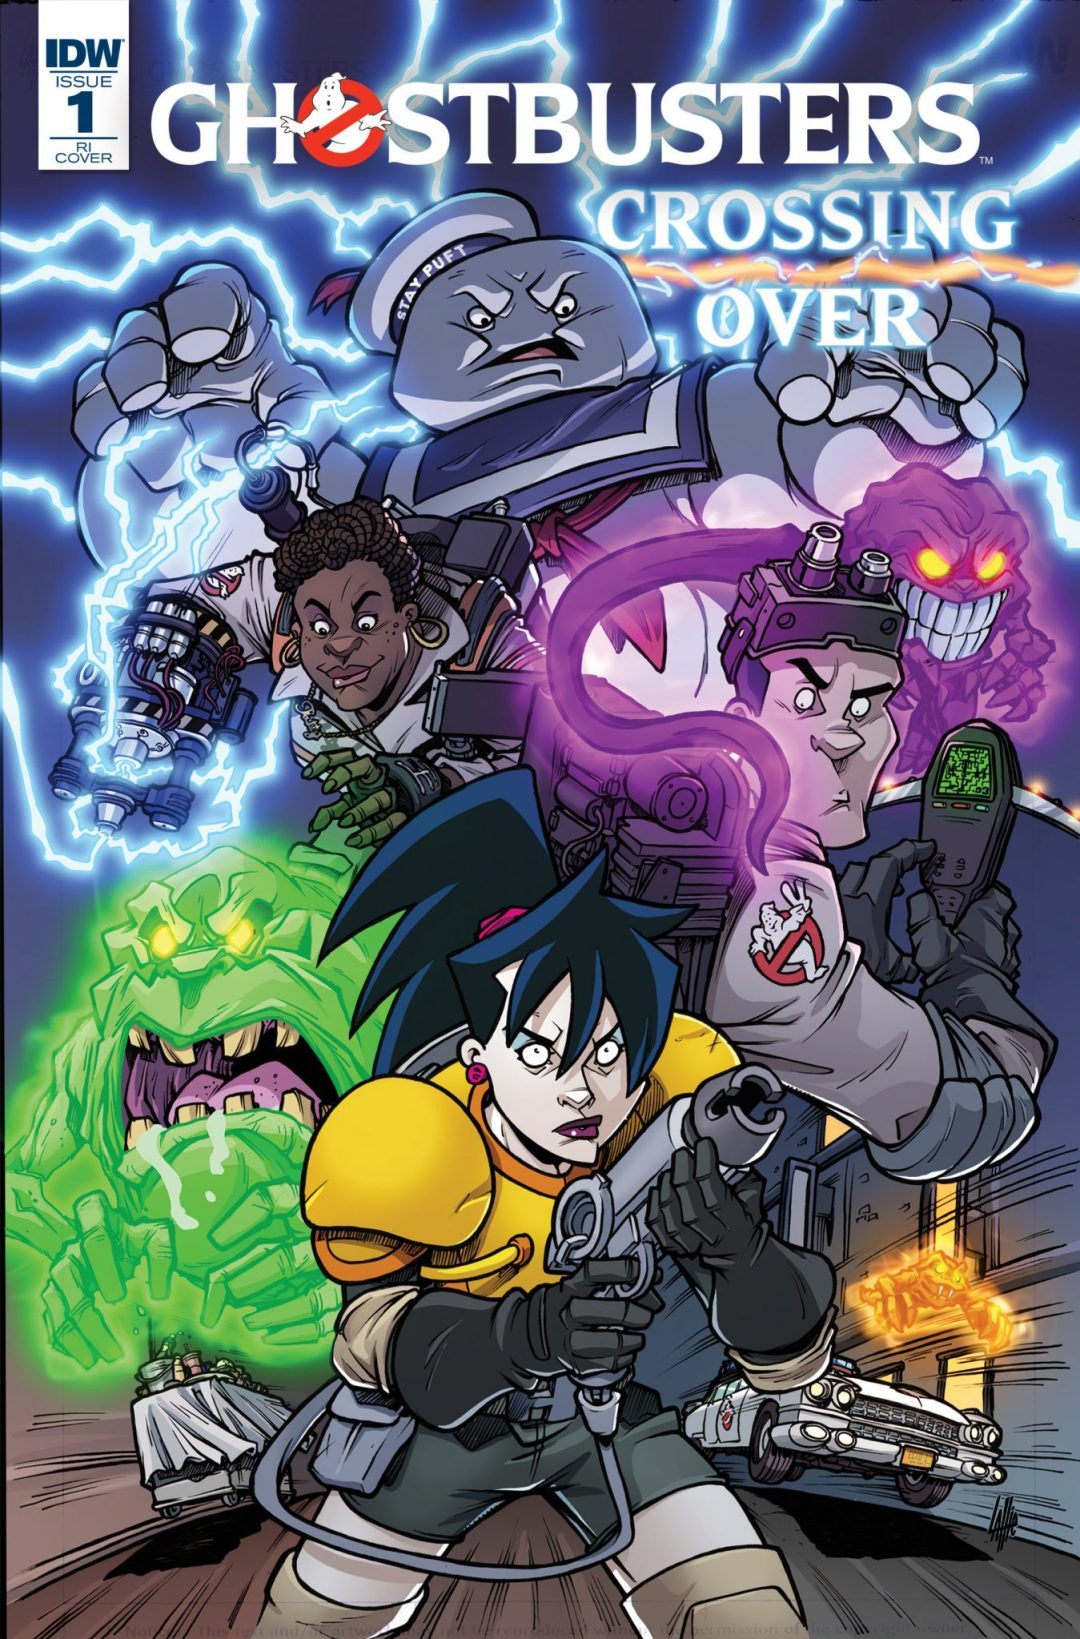 """Calling All Ghostbusters in the Biggest Comic Book """"Crossover"""" to Date!"""